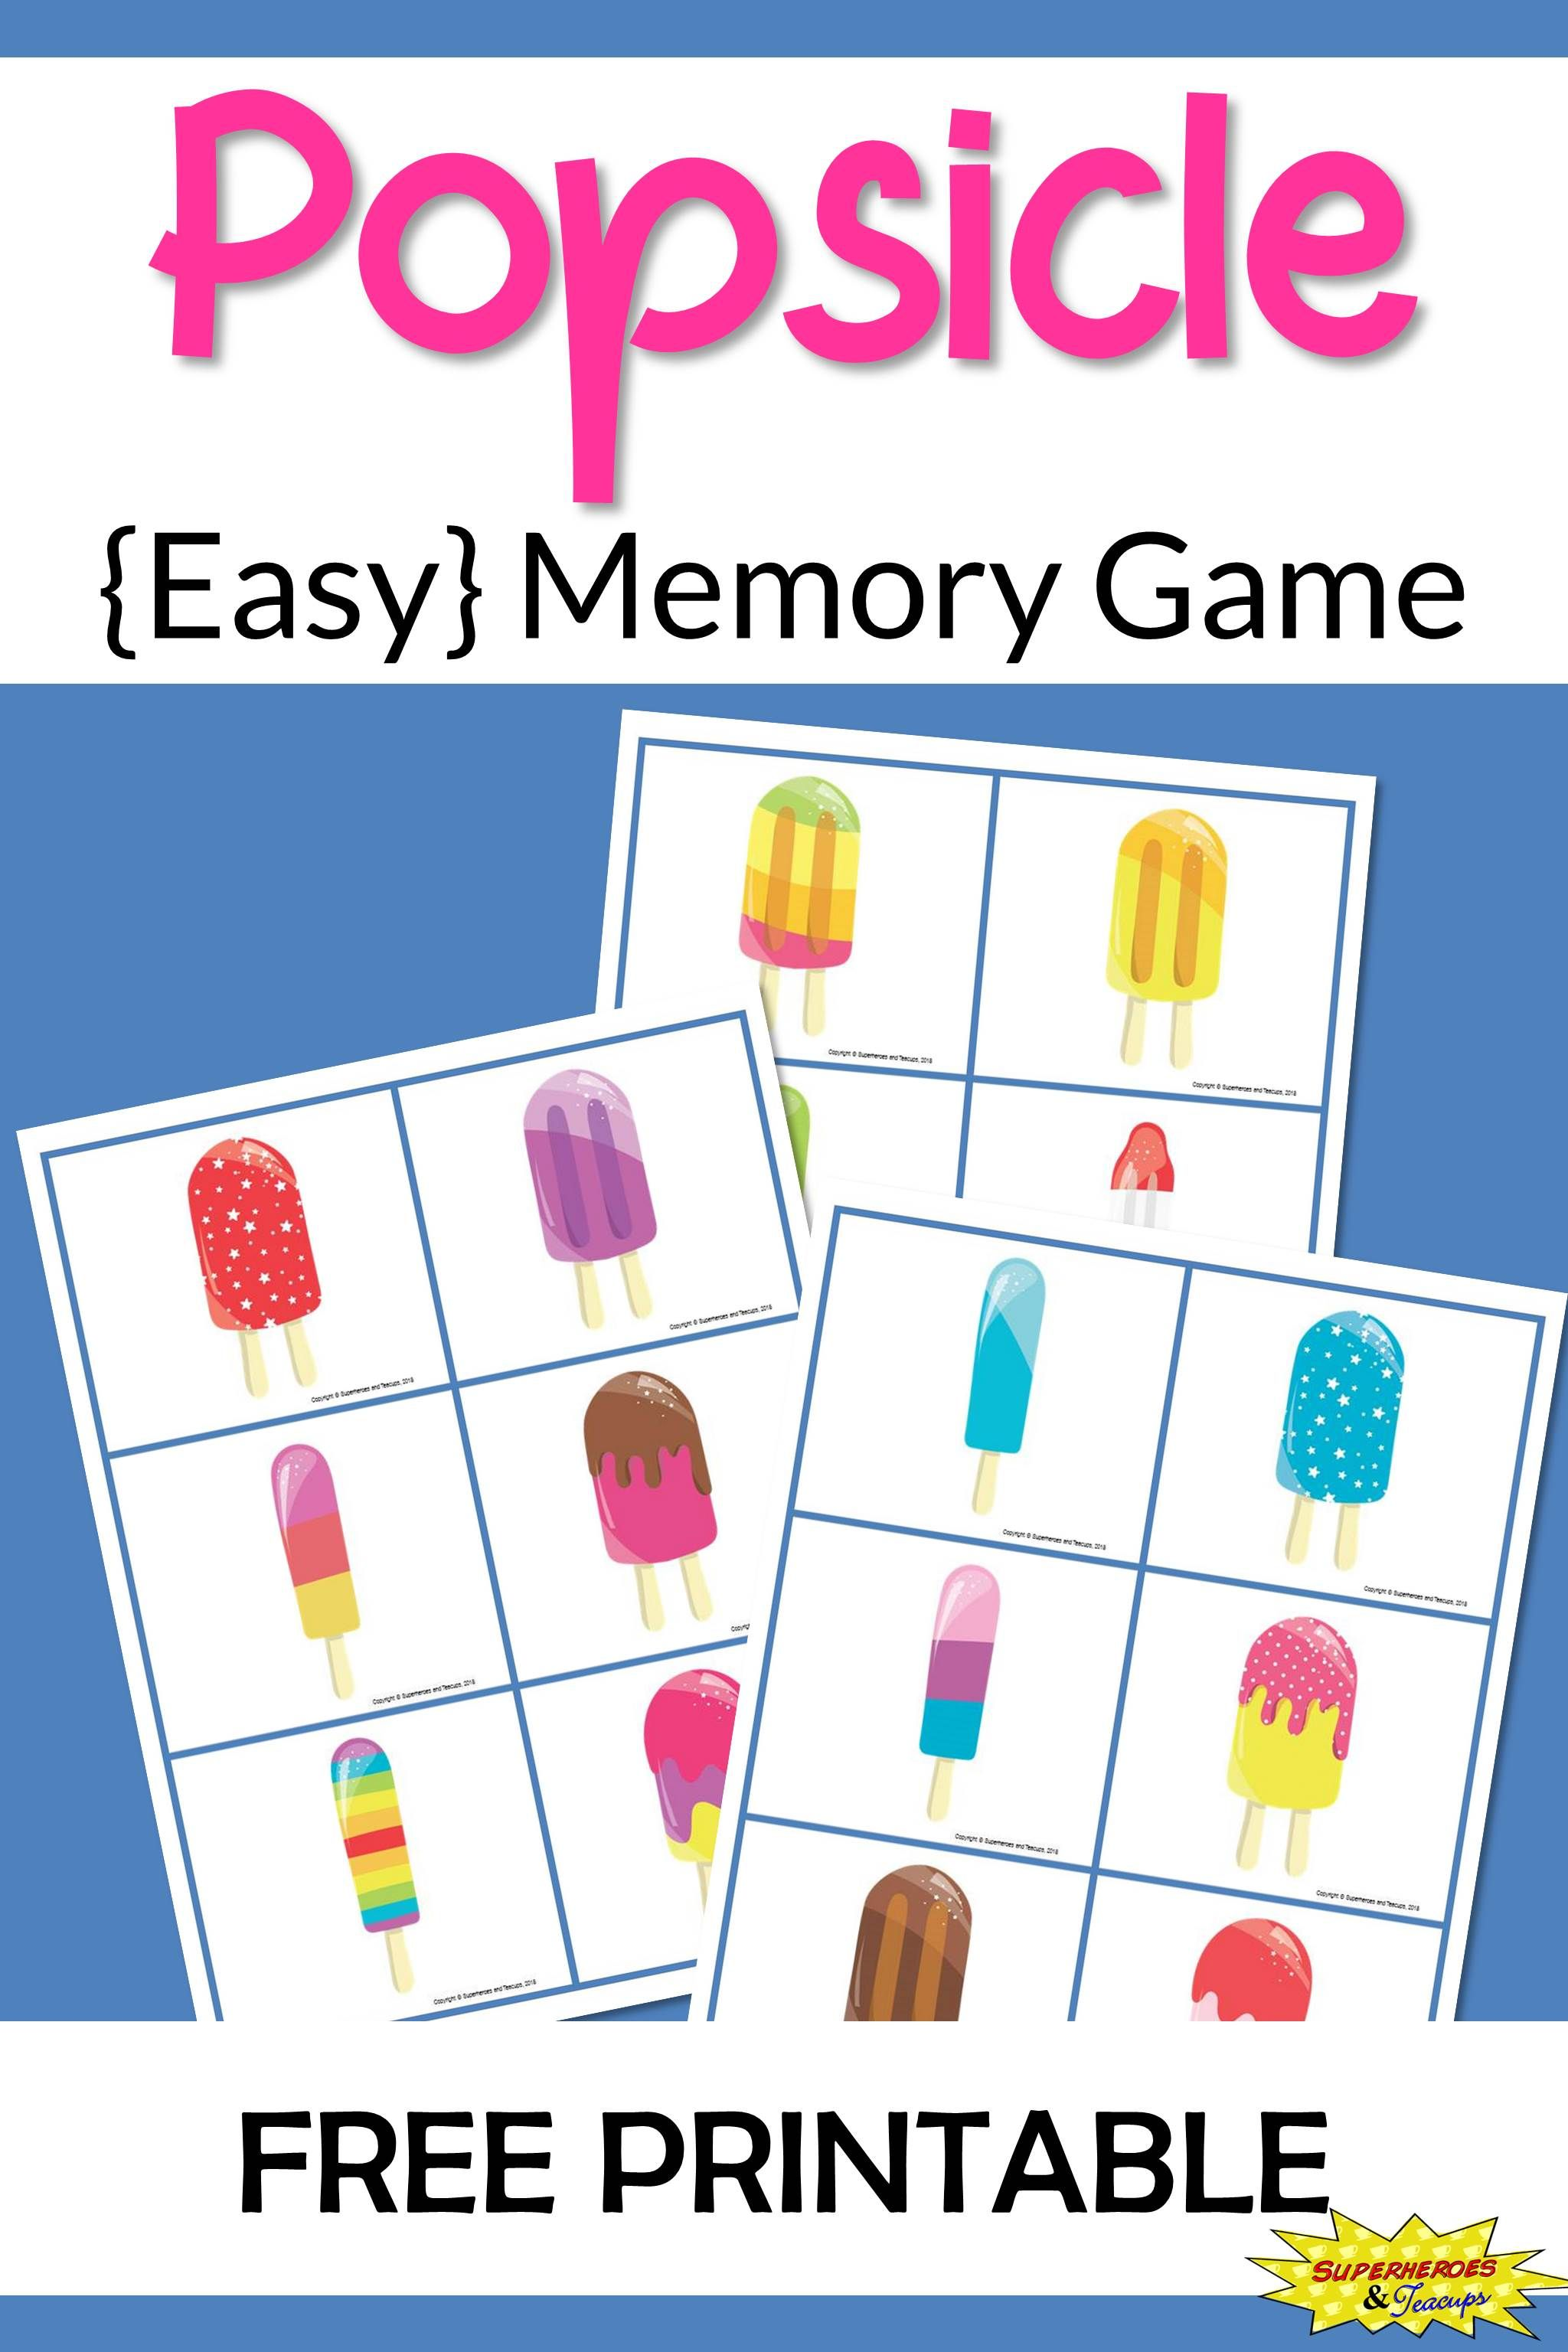 This is a photo of Witty Memory Games for Seniors Printable